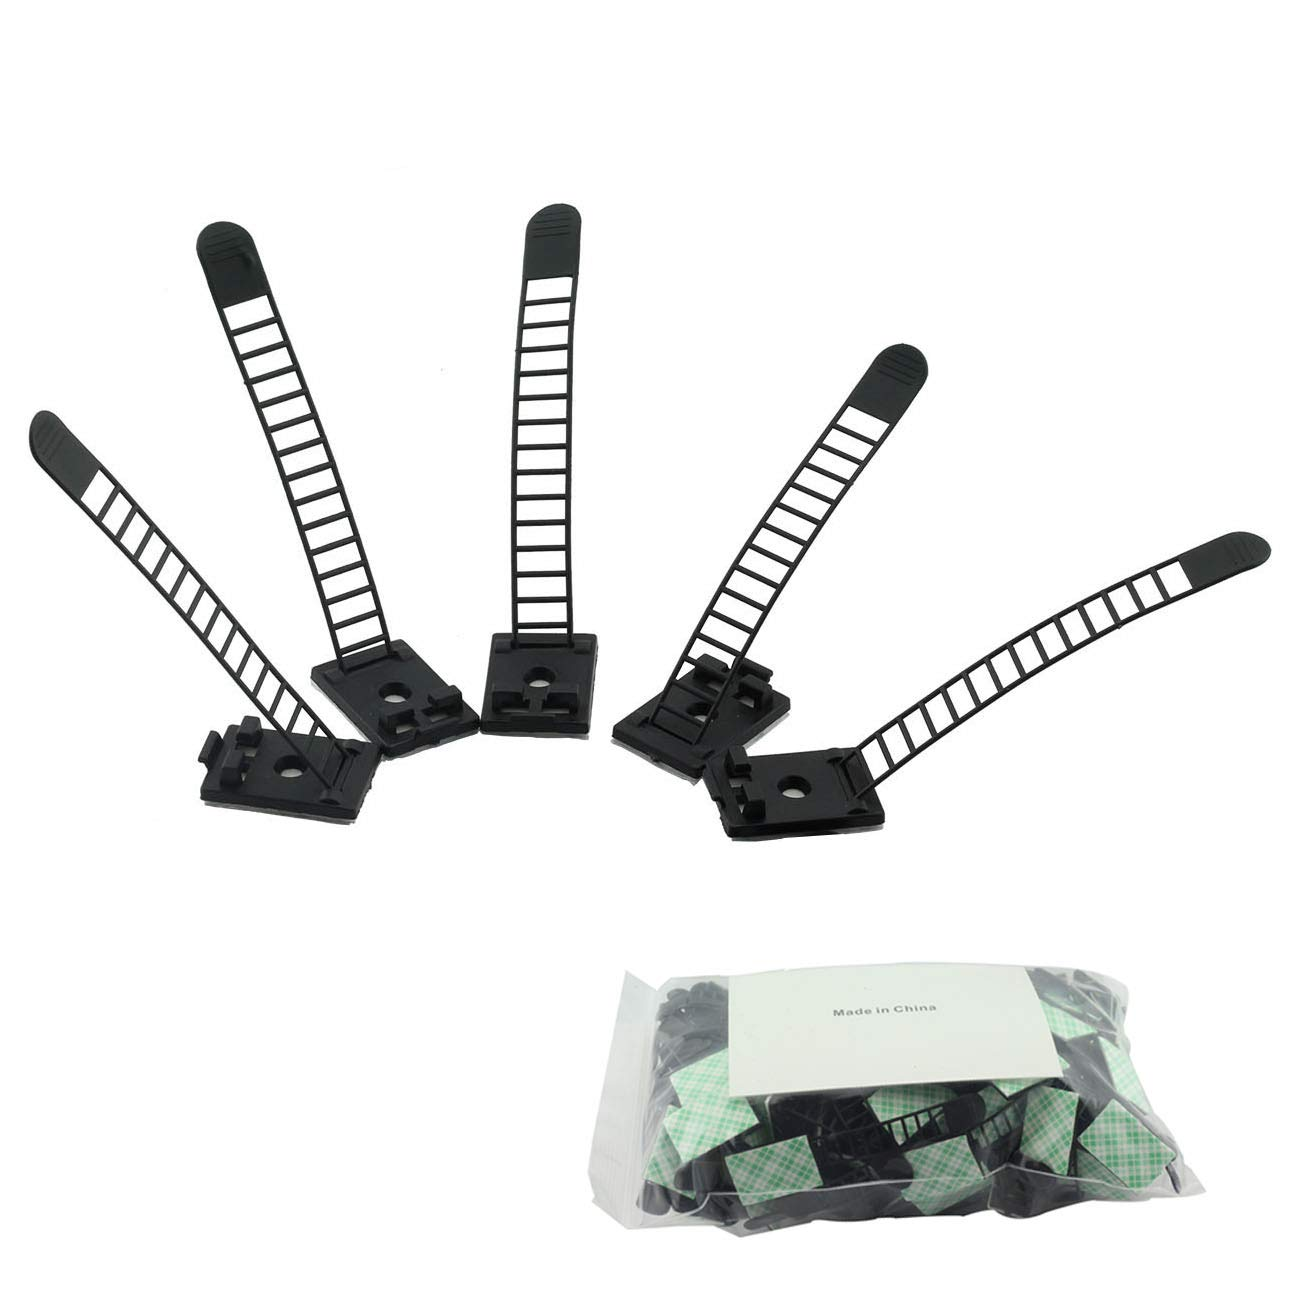 100pcs 91mm Adjustable Self Adhesive Cable Clips Wire Organizer with Optional Screw Mount for Electric Wiring Accessories Cable Clamp Clips Fixed Fasten Cable Tie Black by Magic&Shell (Image #5)